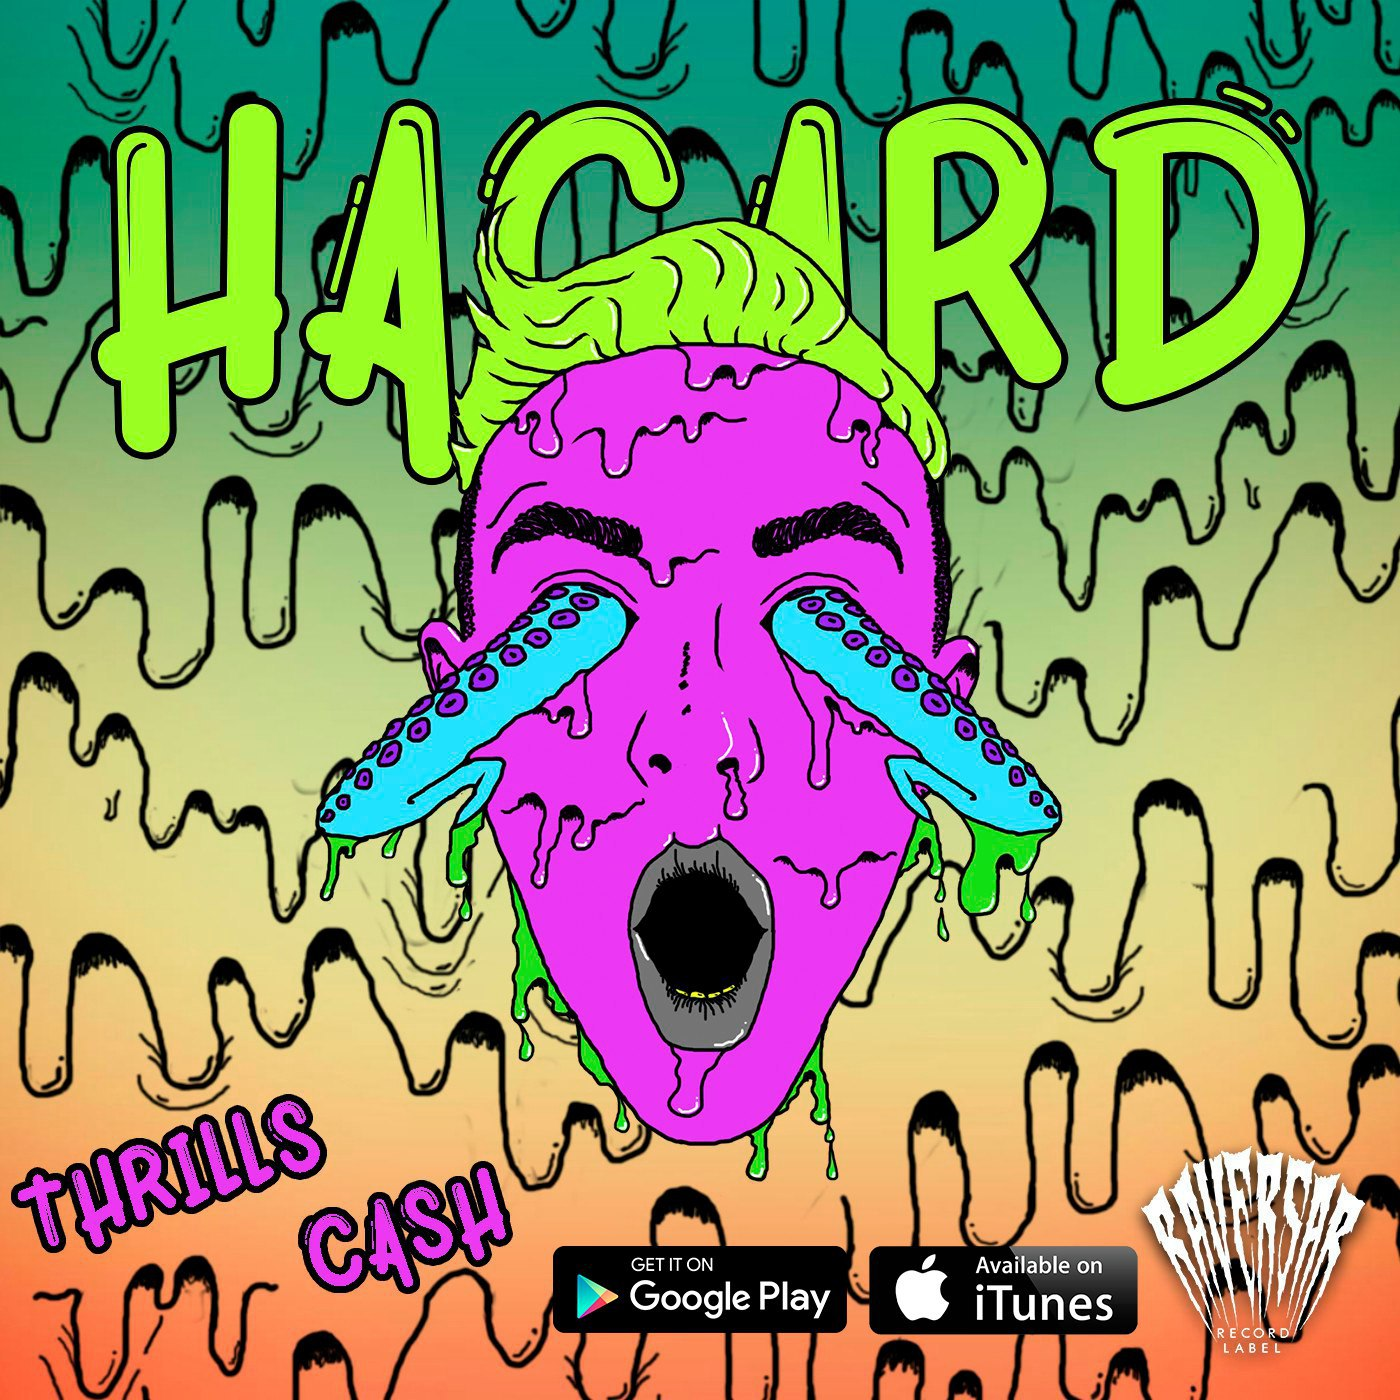 Hacard - Thrills Cash